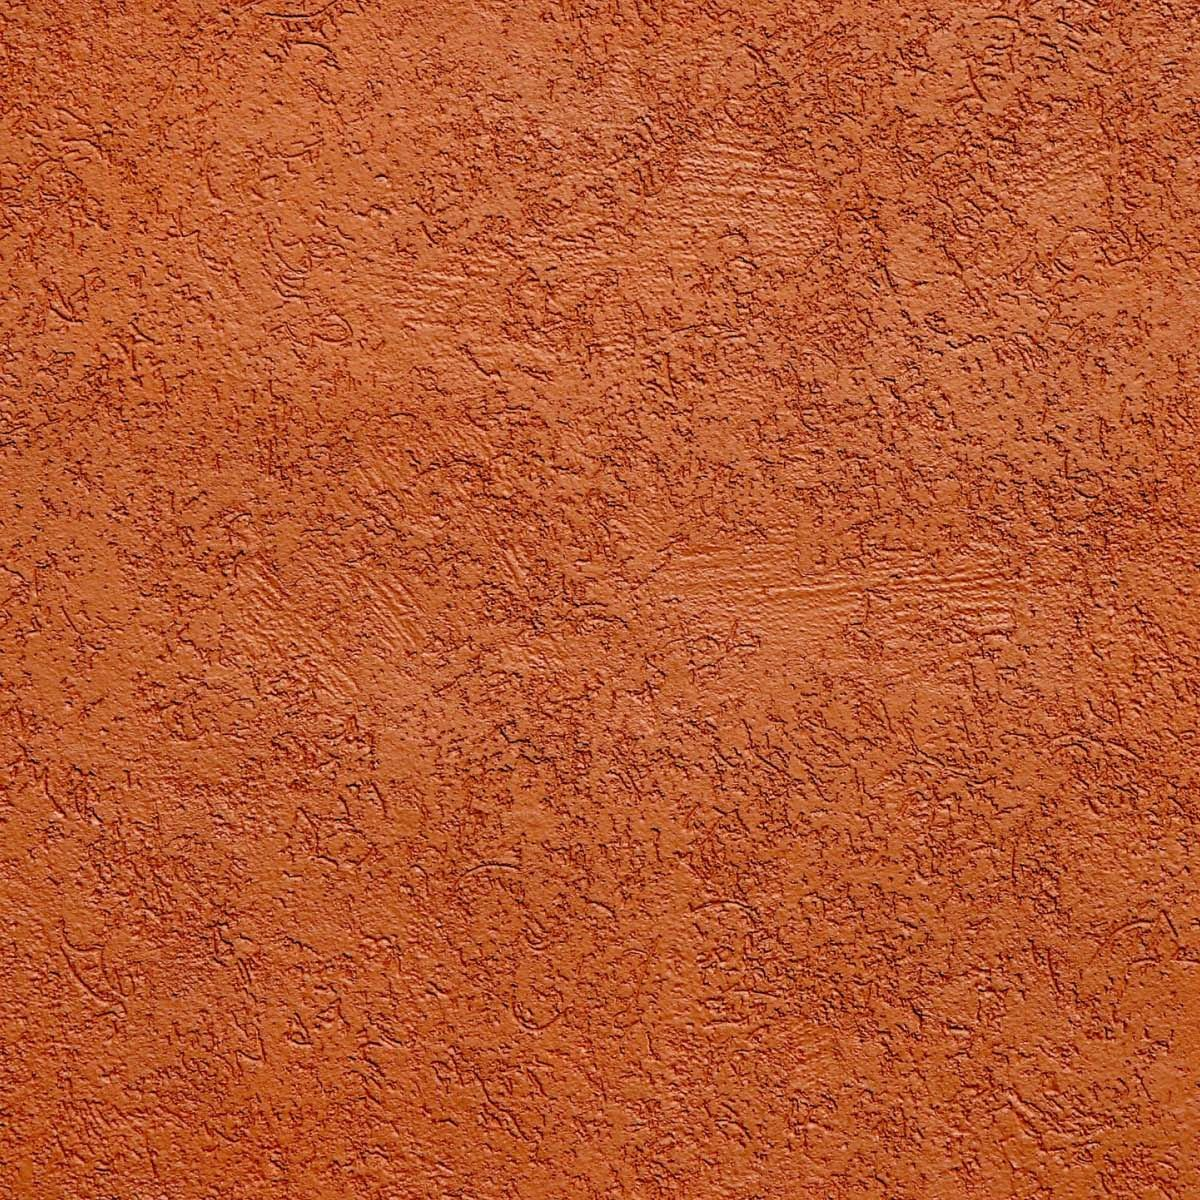 Texture Walls Design Rust Colored Textured Stucco Wall Design And